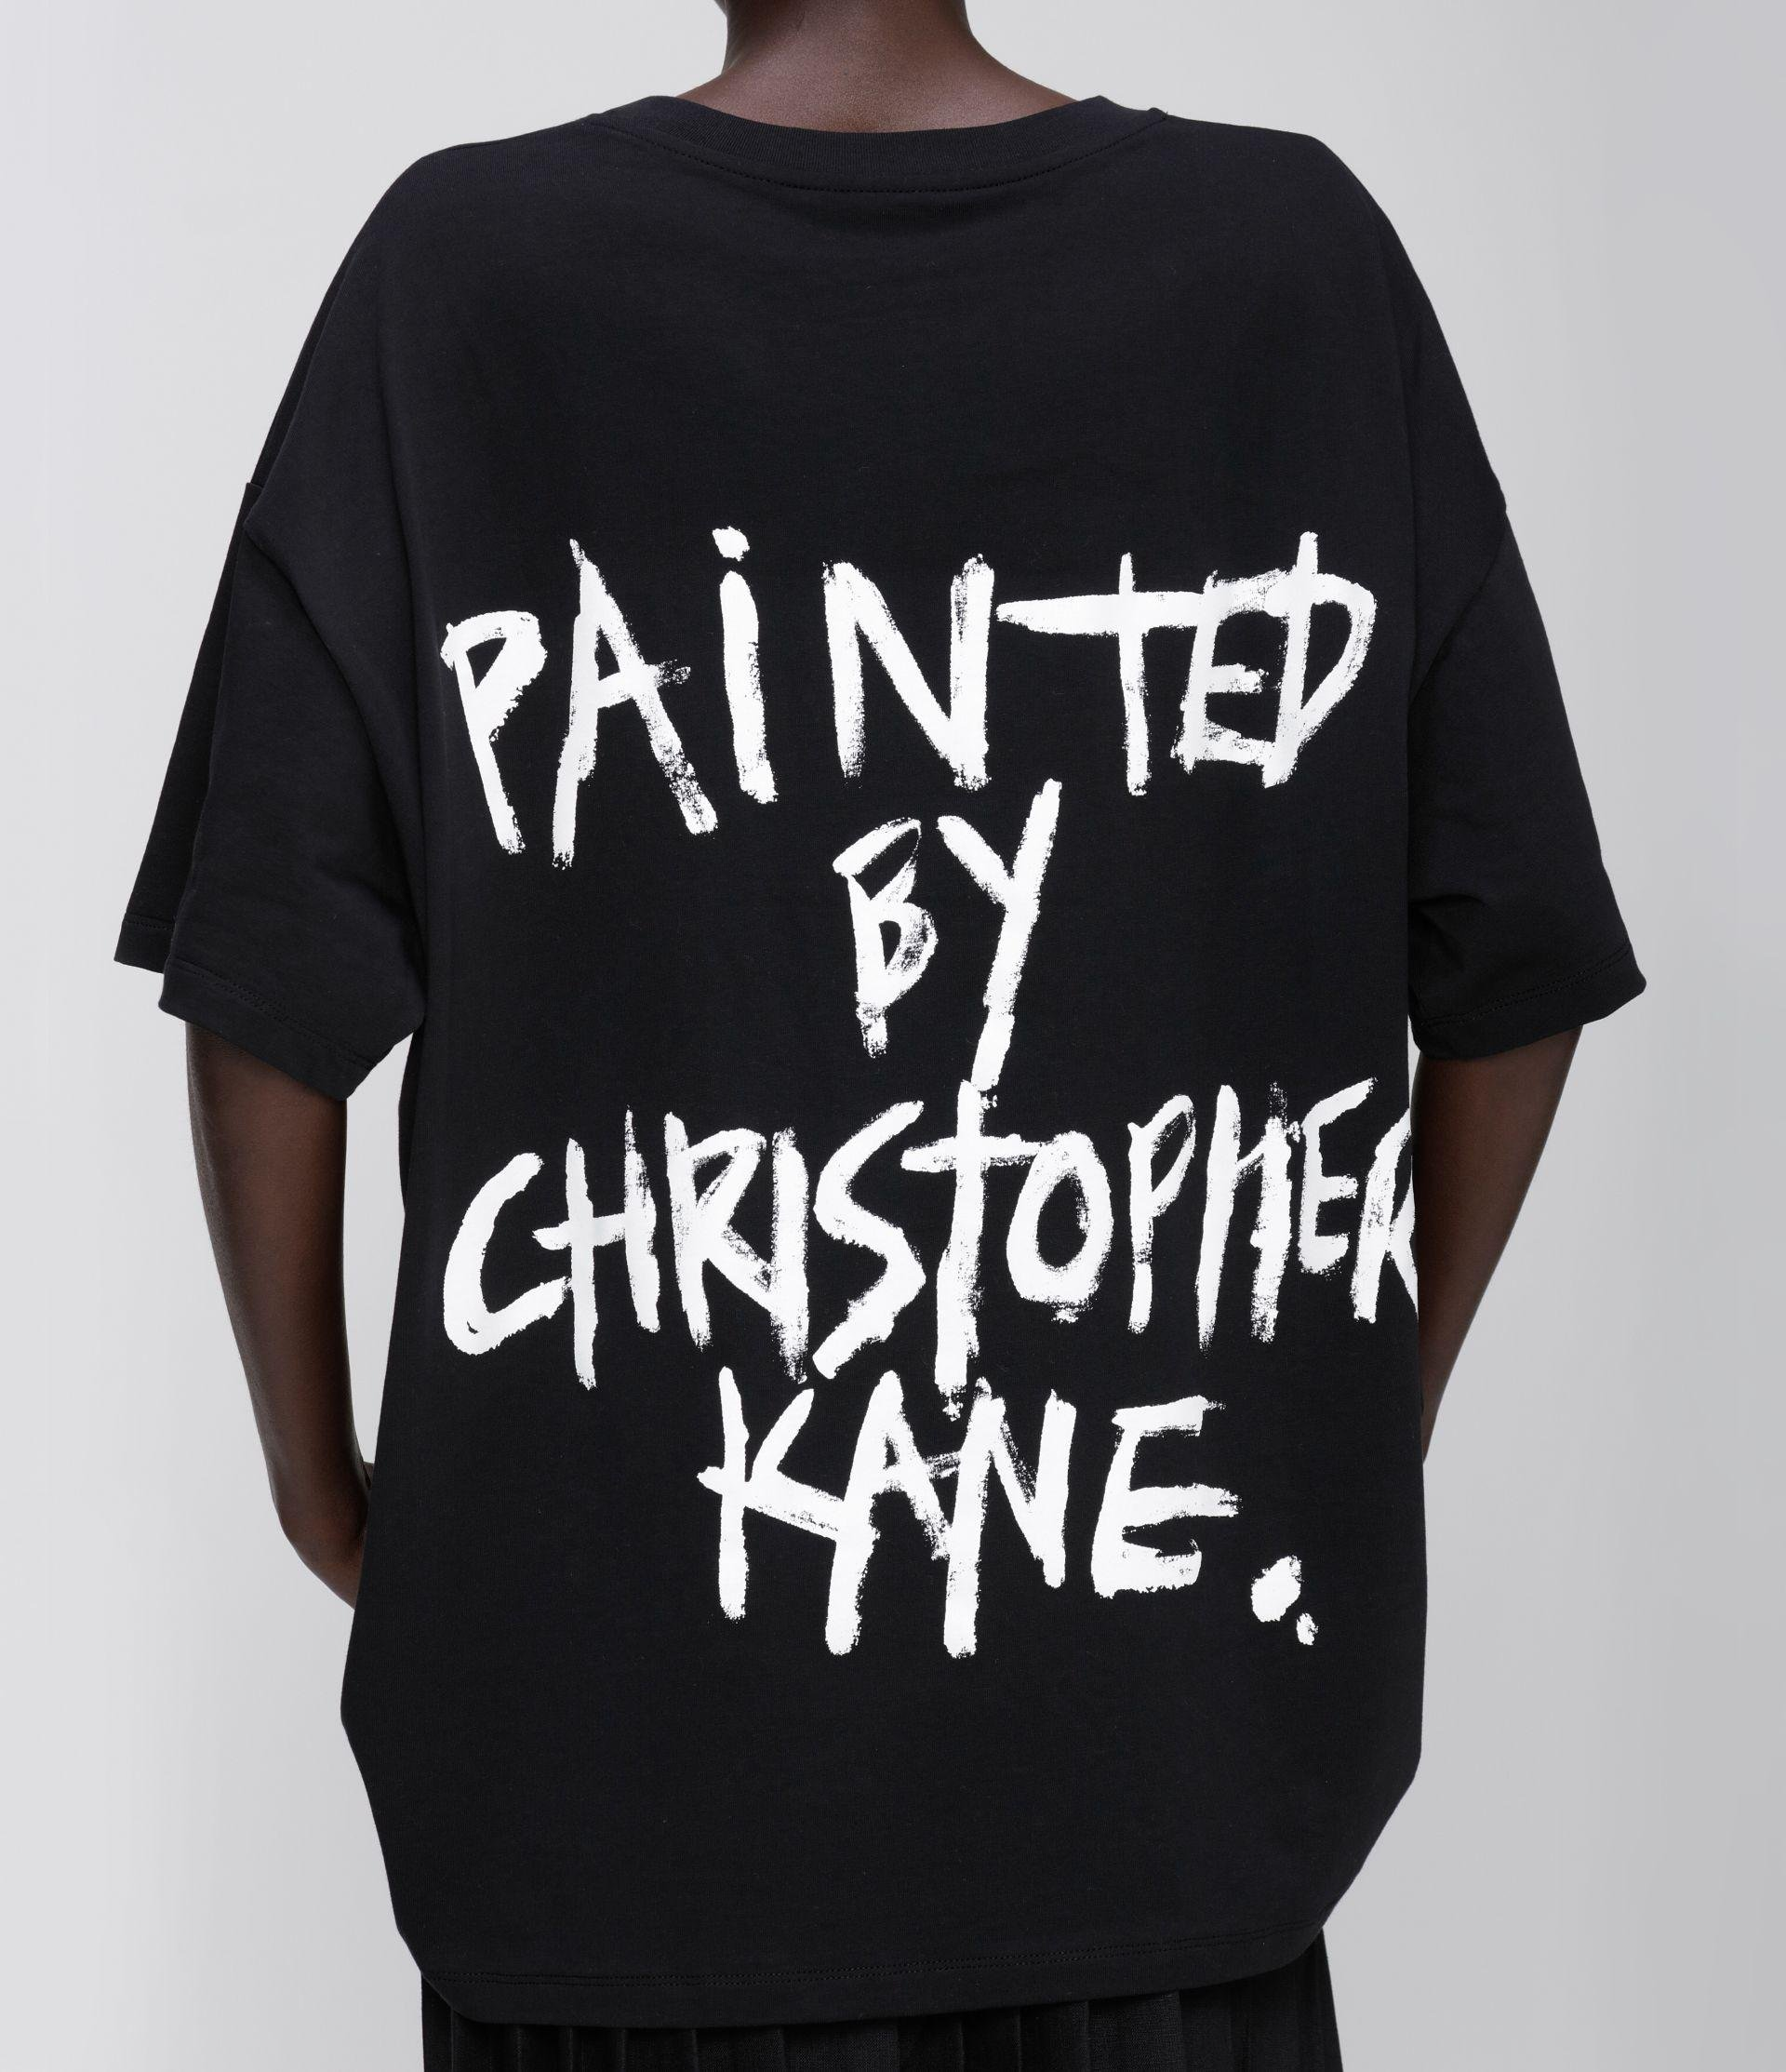 Painted by Christopher Kane t-shirt 4